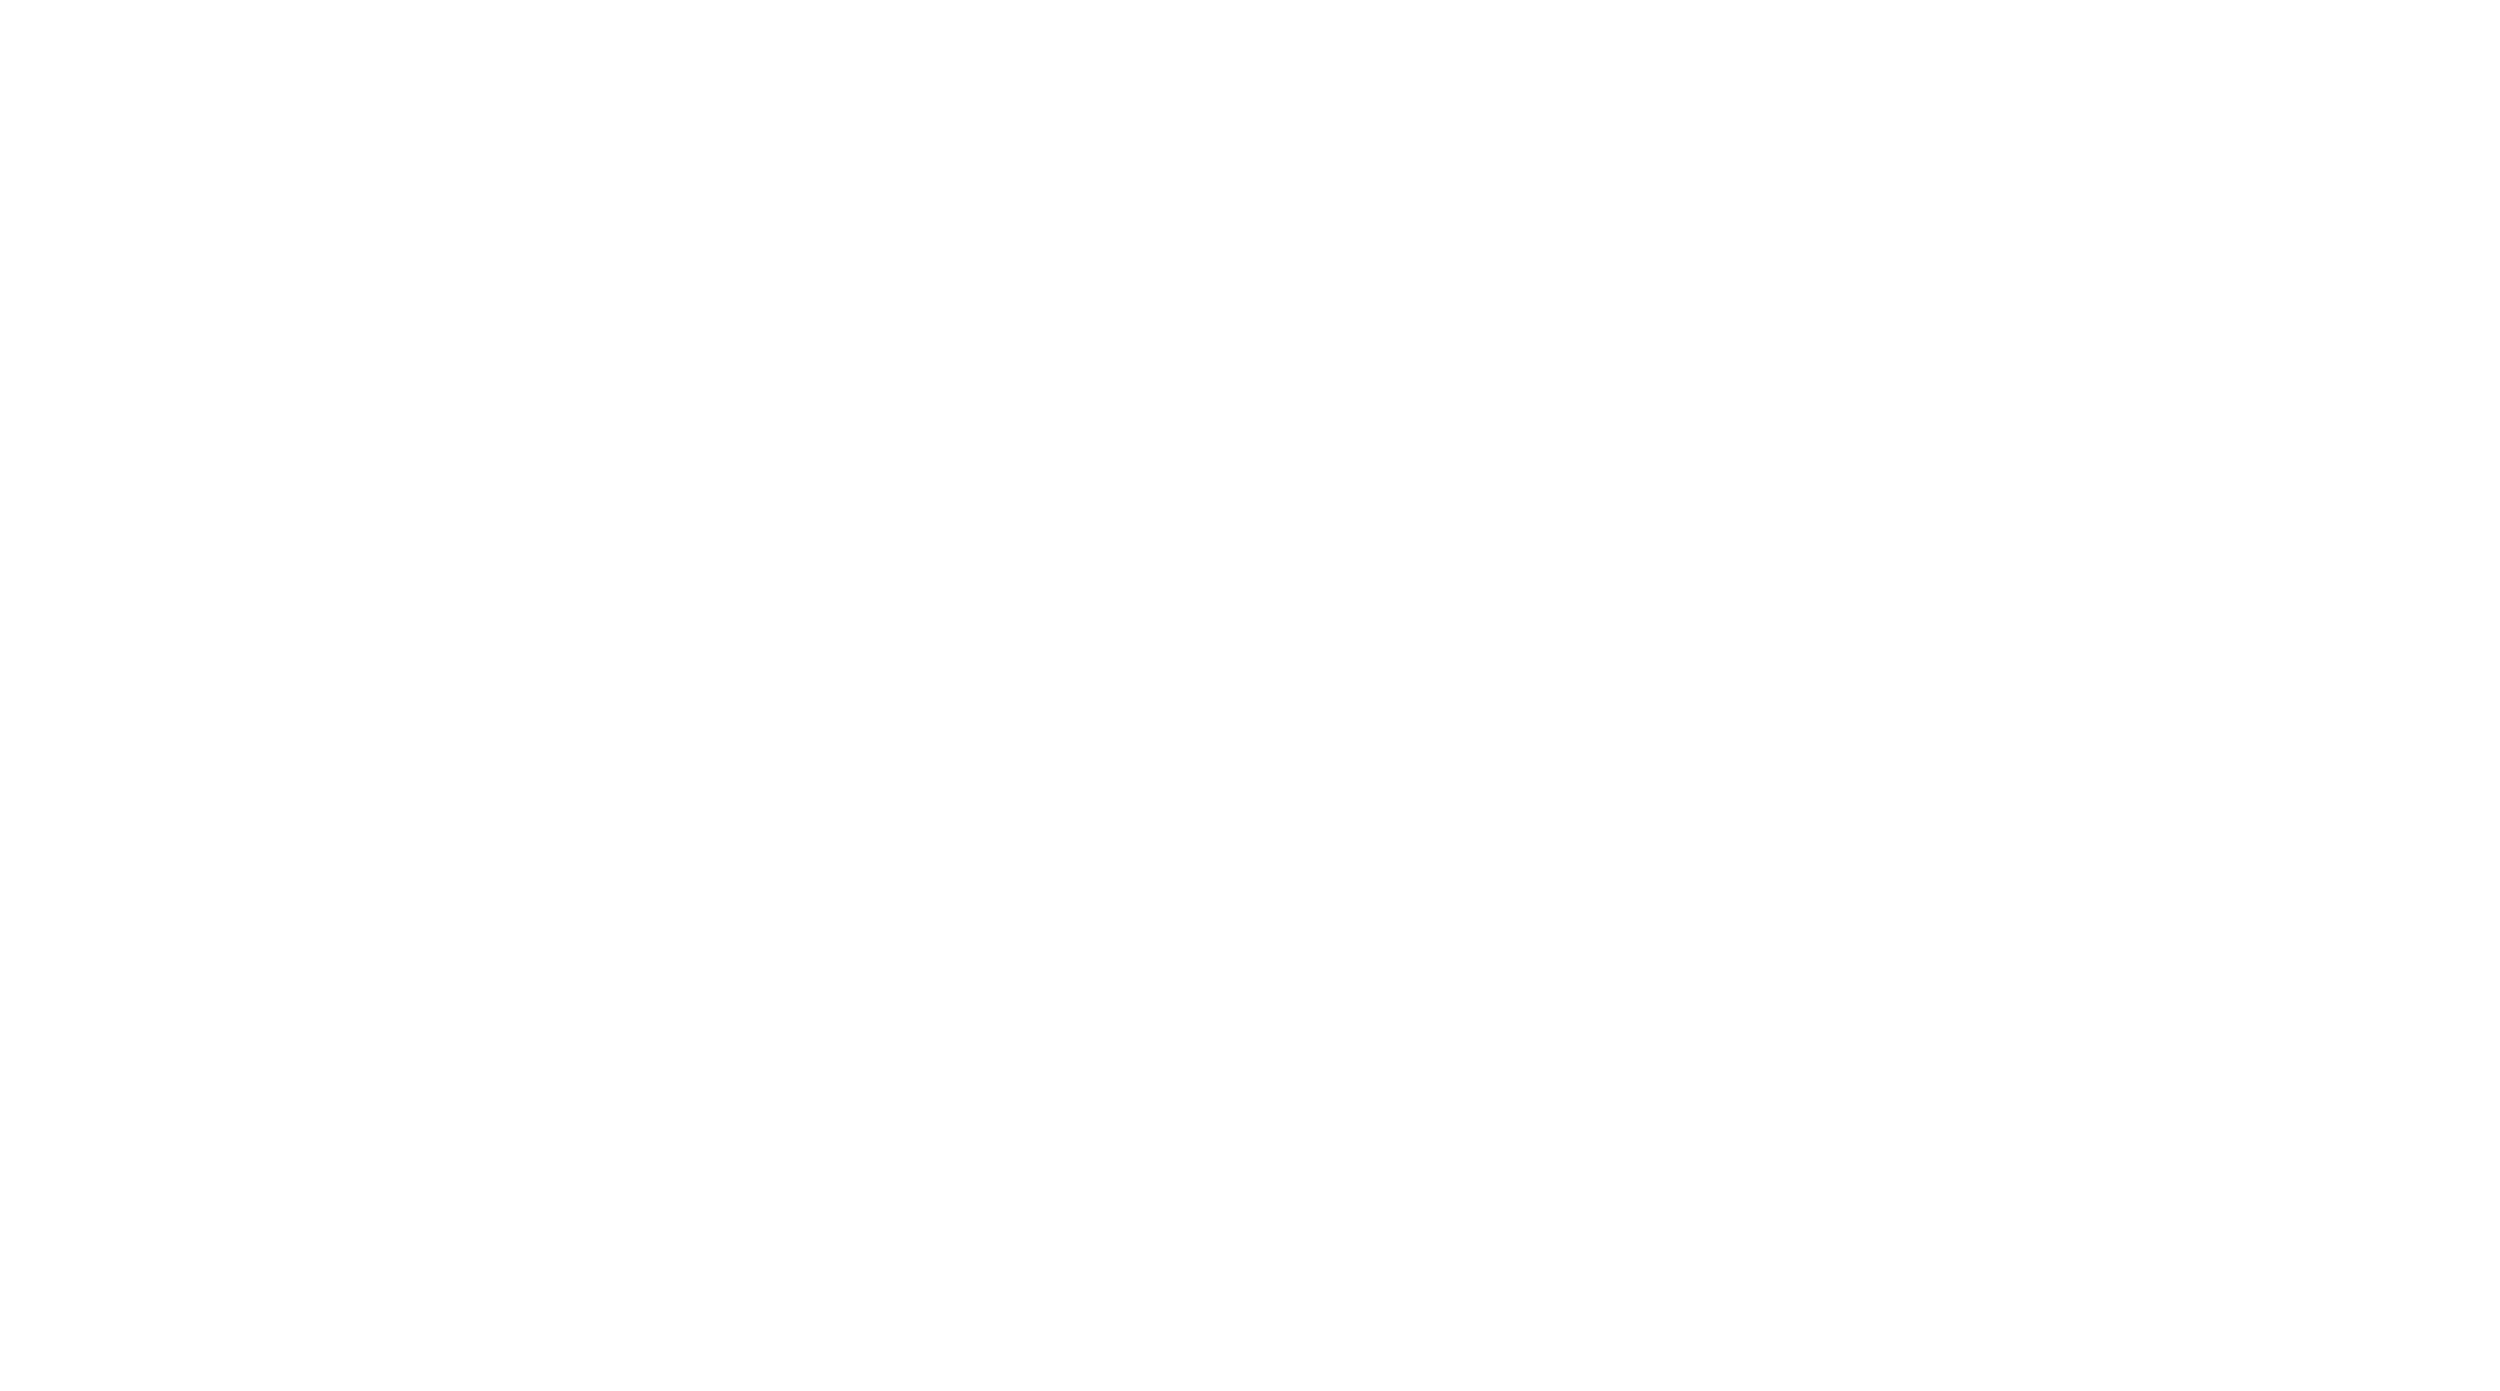 Many of our projects and programs are made possible, in part, by a grant from the Norman Arts Council Hotel Tax Grant Program  and/or the text  Norman Arts Council.